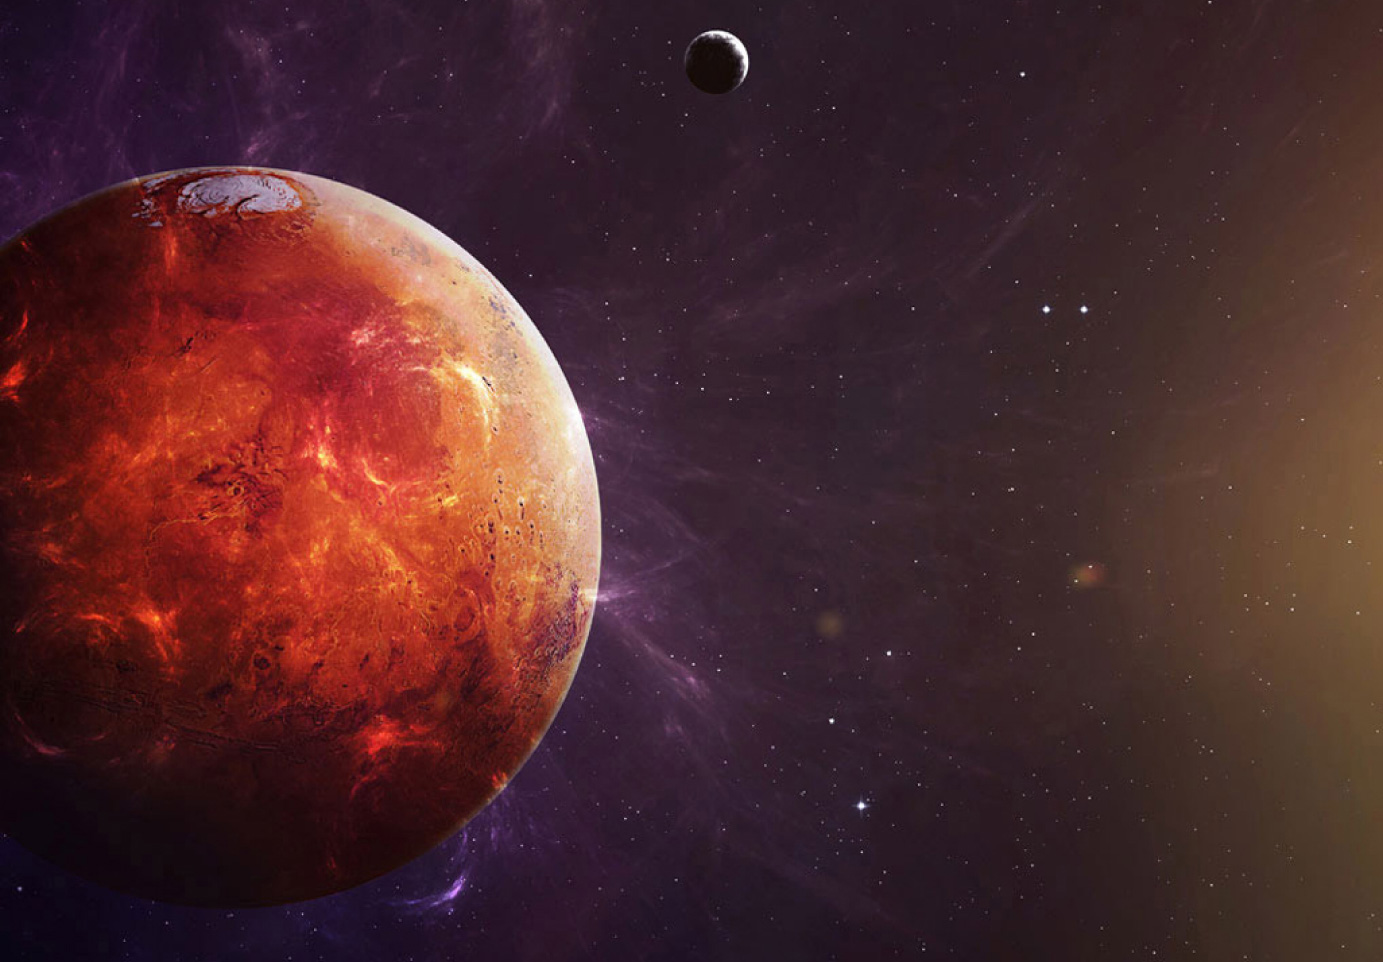 India's mission to Mars